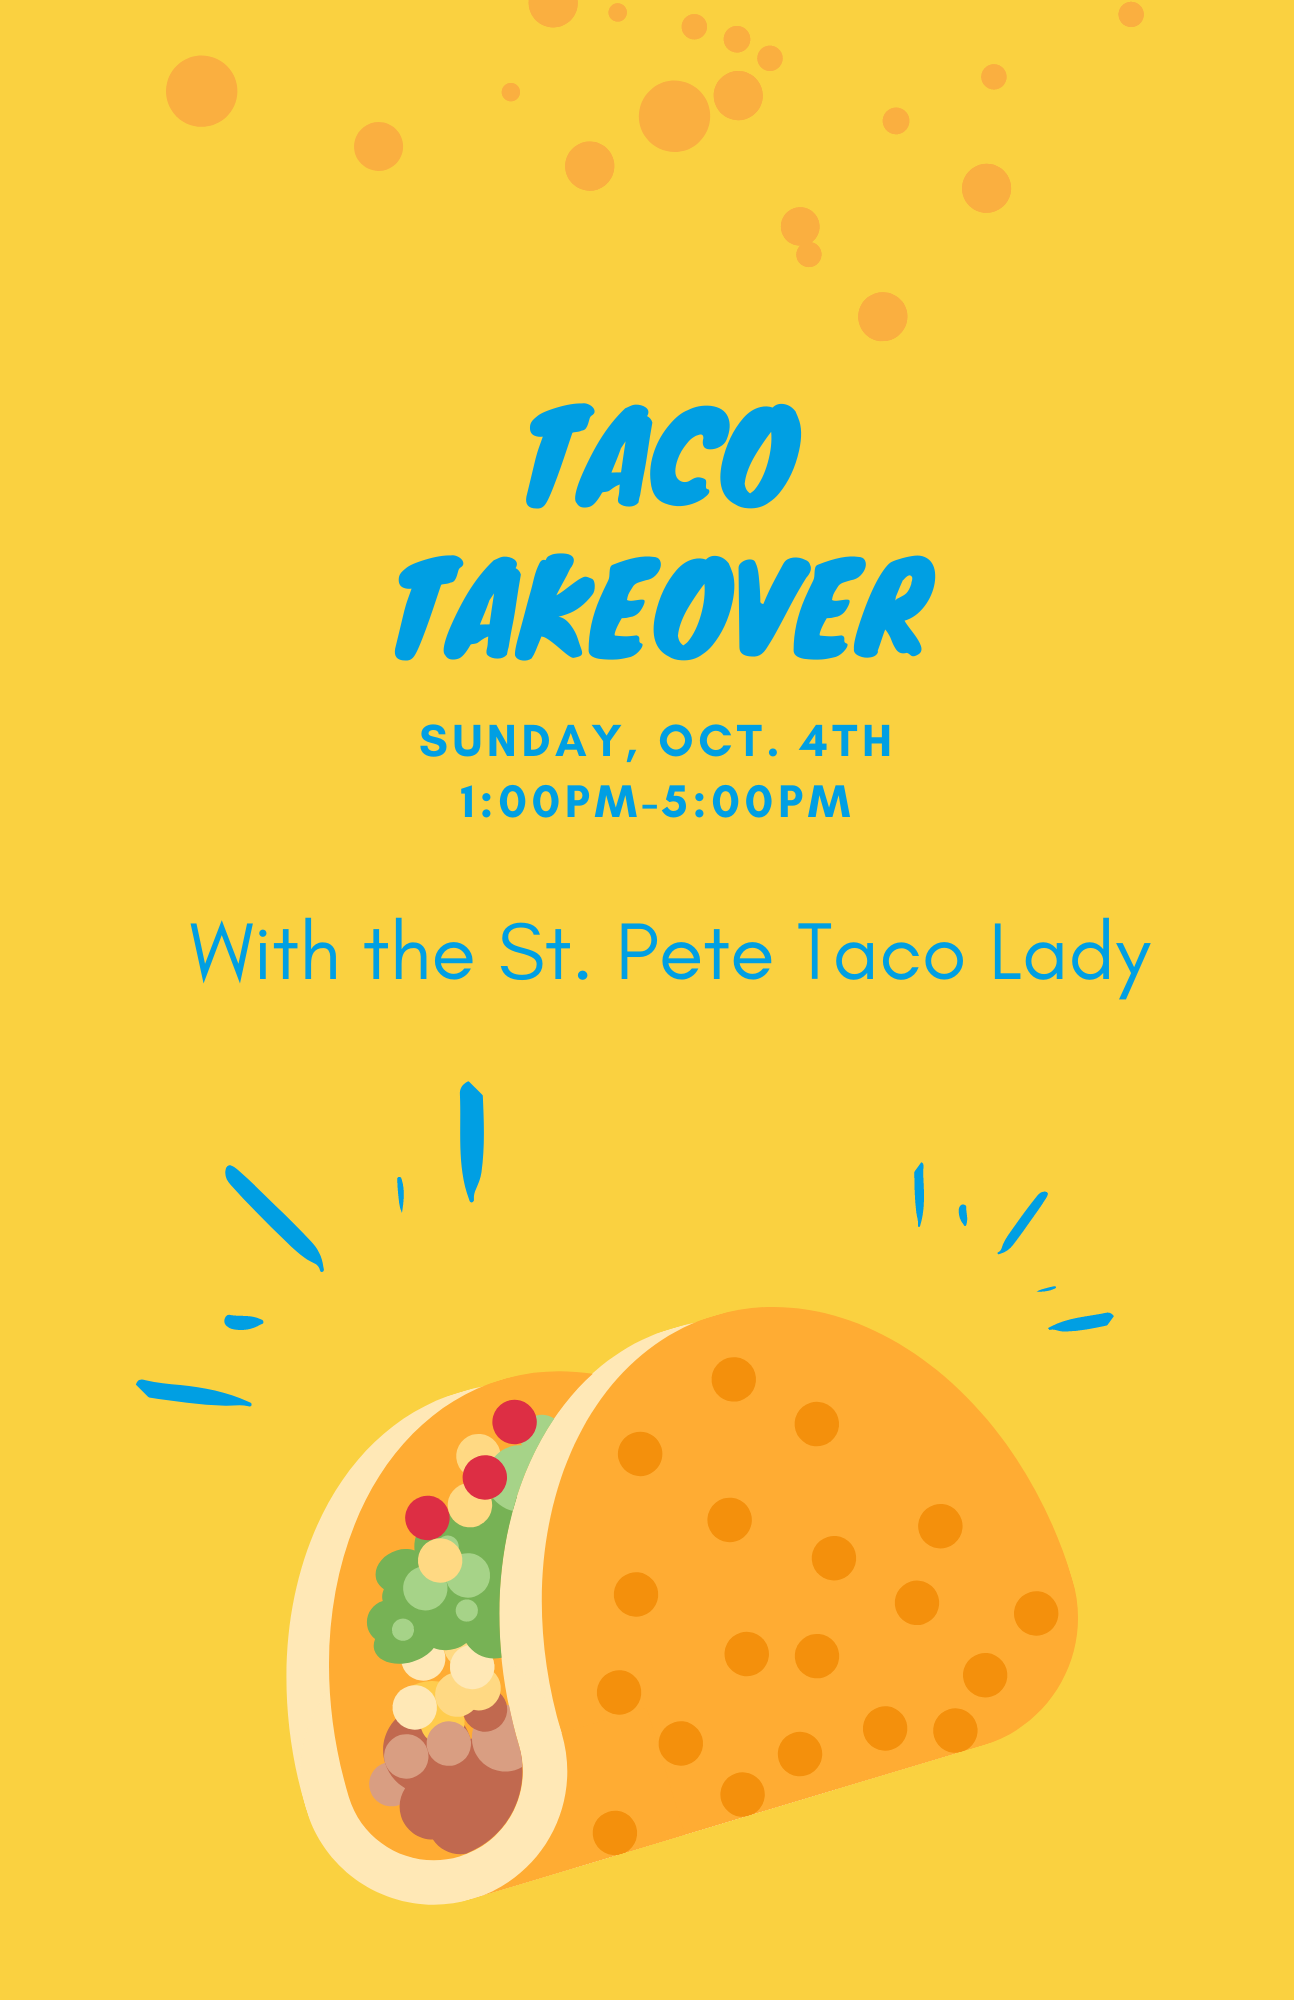 Taco Takeover With The St. Pete Taco Lady